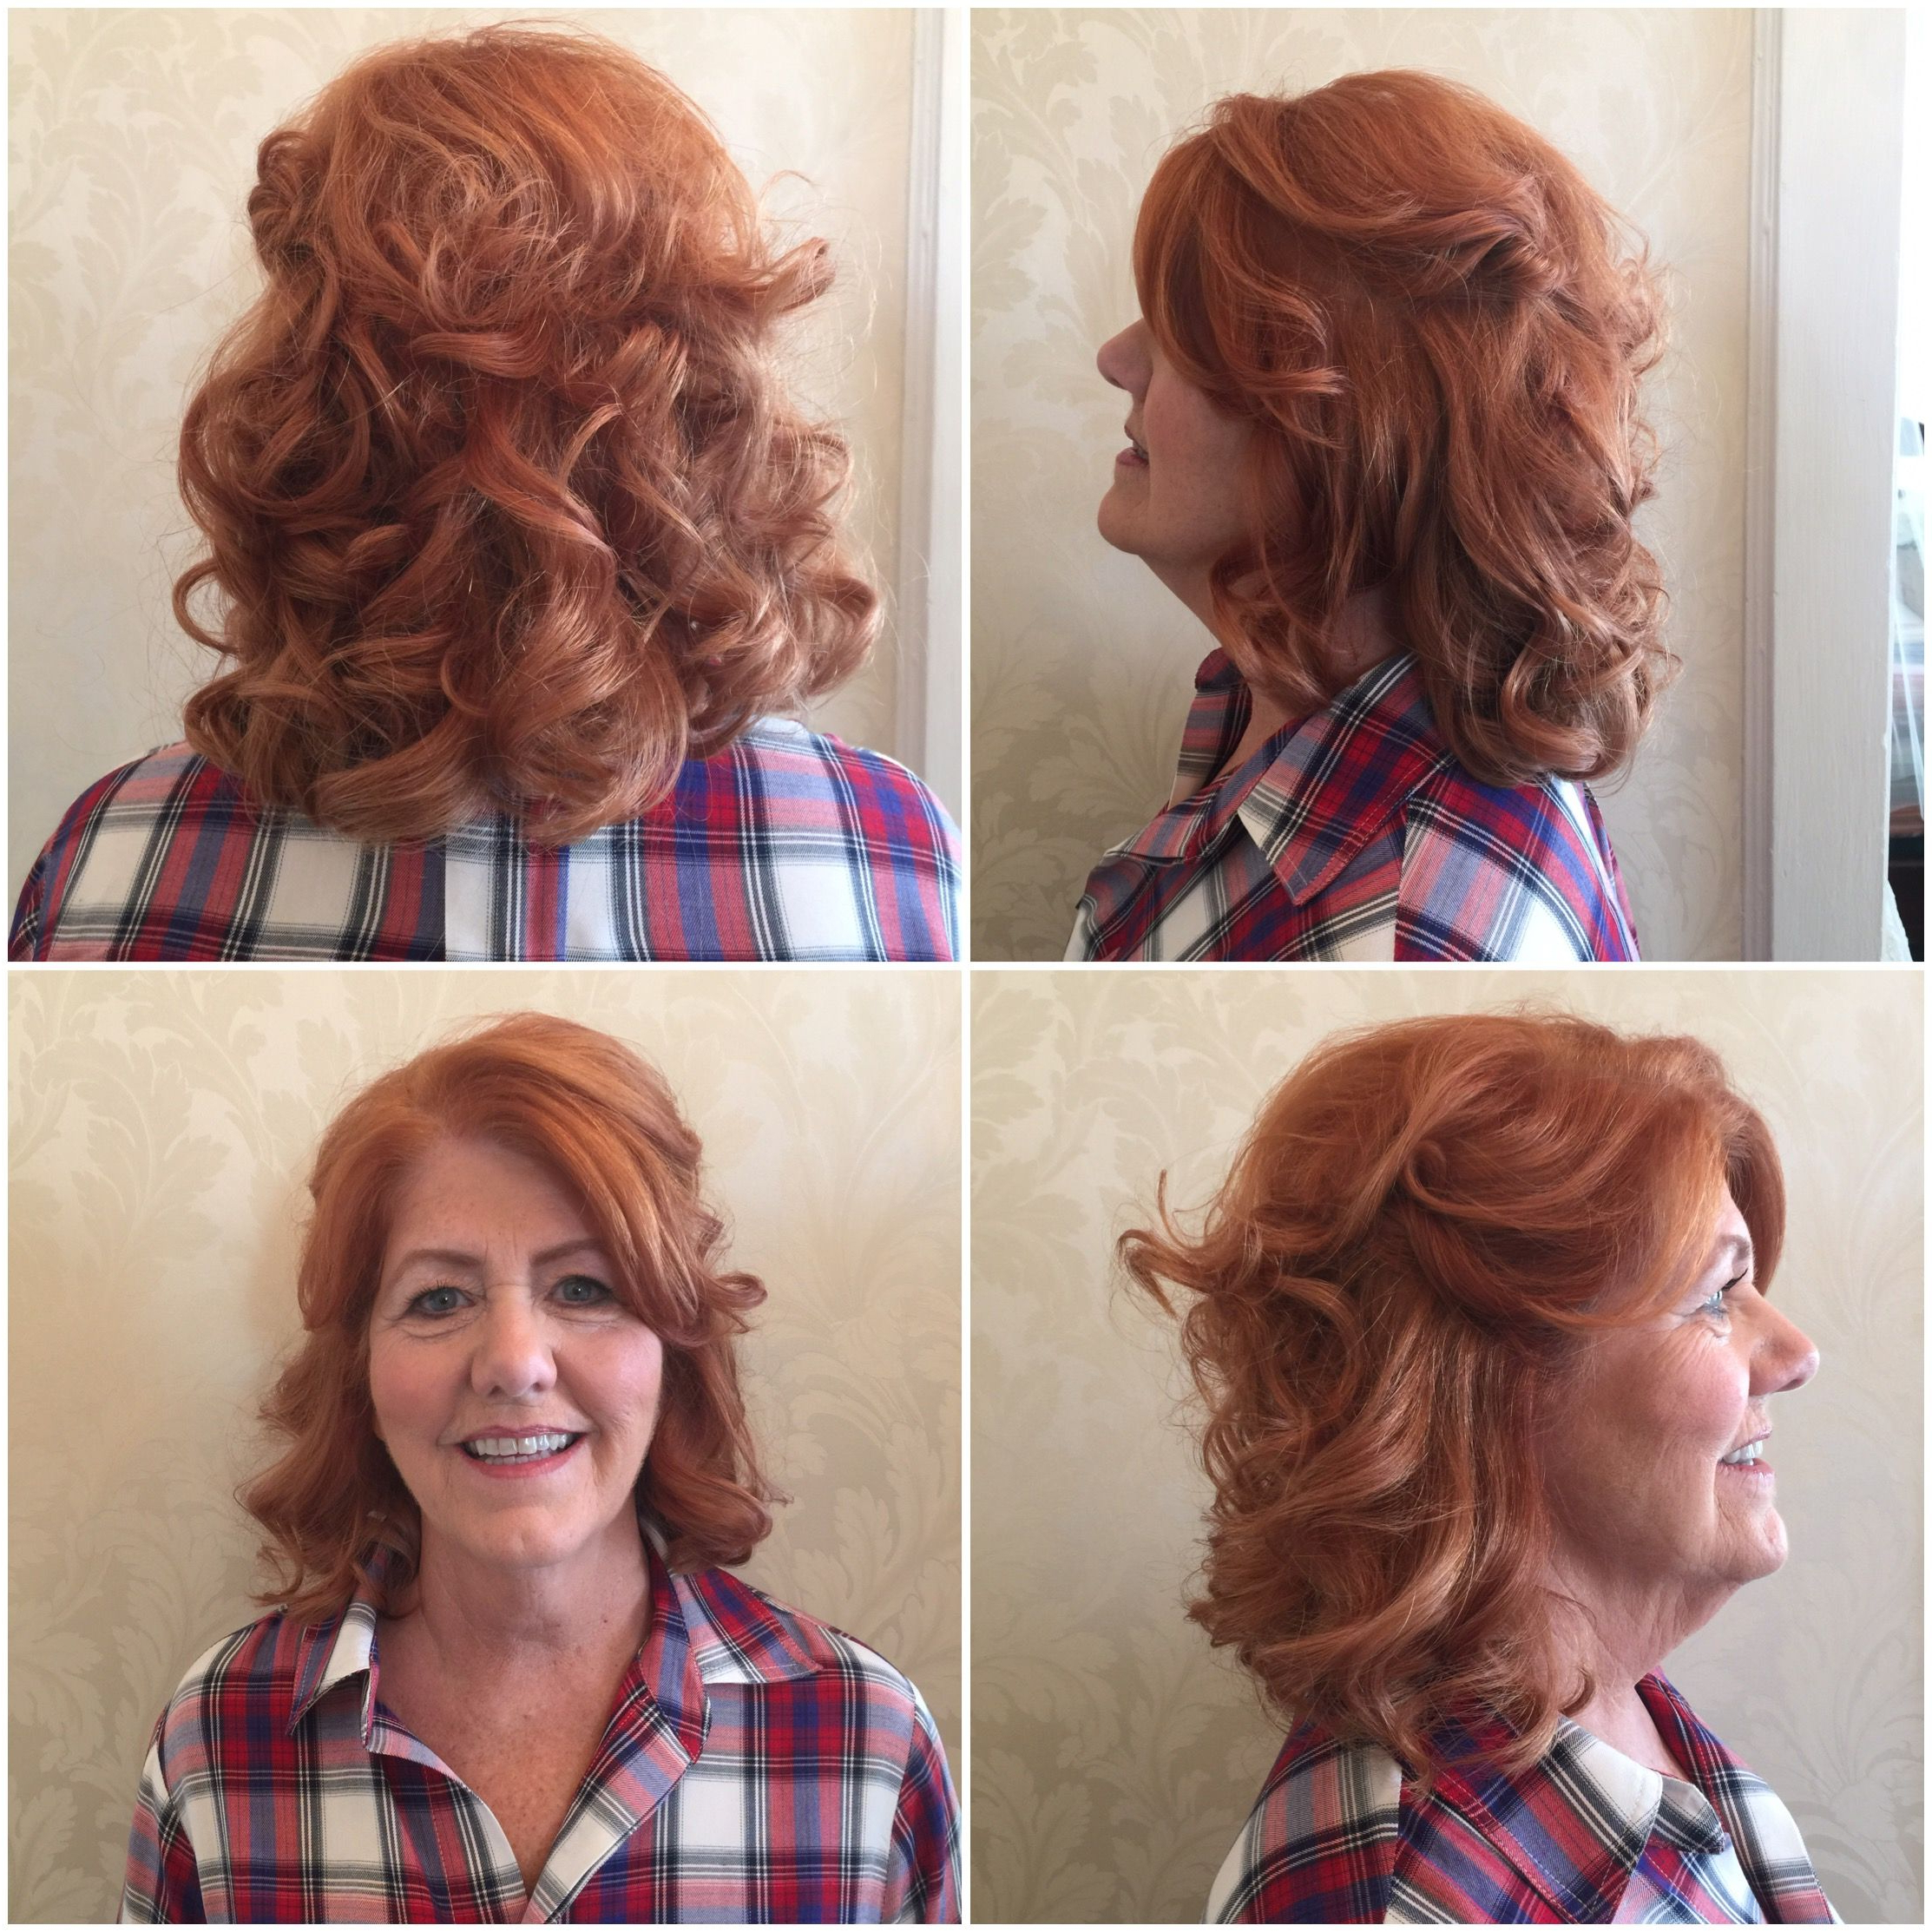 Most Current Soft Shoulder Length Waves Wedding Hairstyles Regarding Mother Of The Bride Mother Of The Groom Half Up Curls Waves Wedding (View 17 of 20)